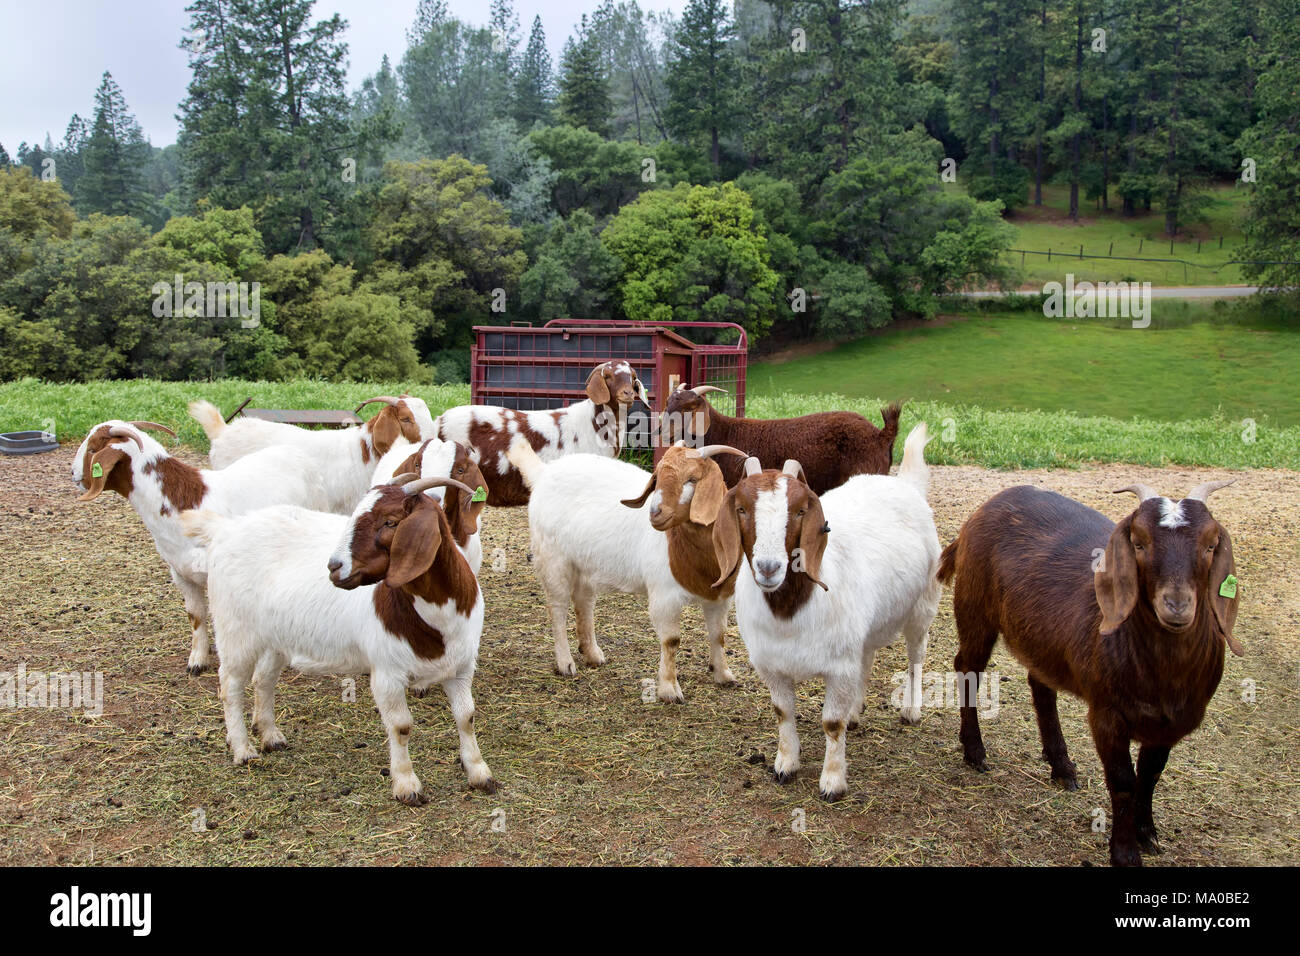 Female Boer Goats  'Capra aegagrus hircus' gathered in area adjoining the barn, waiting to be fed, green pasture. - Stock Image